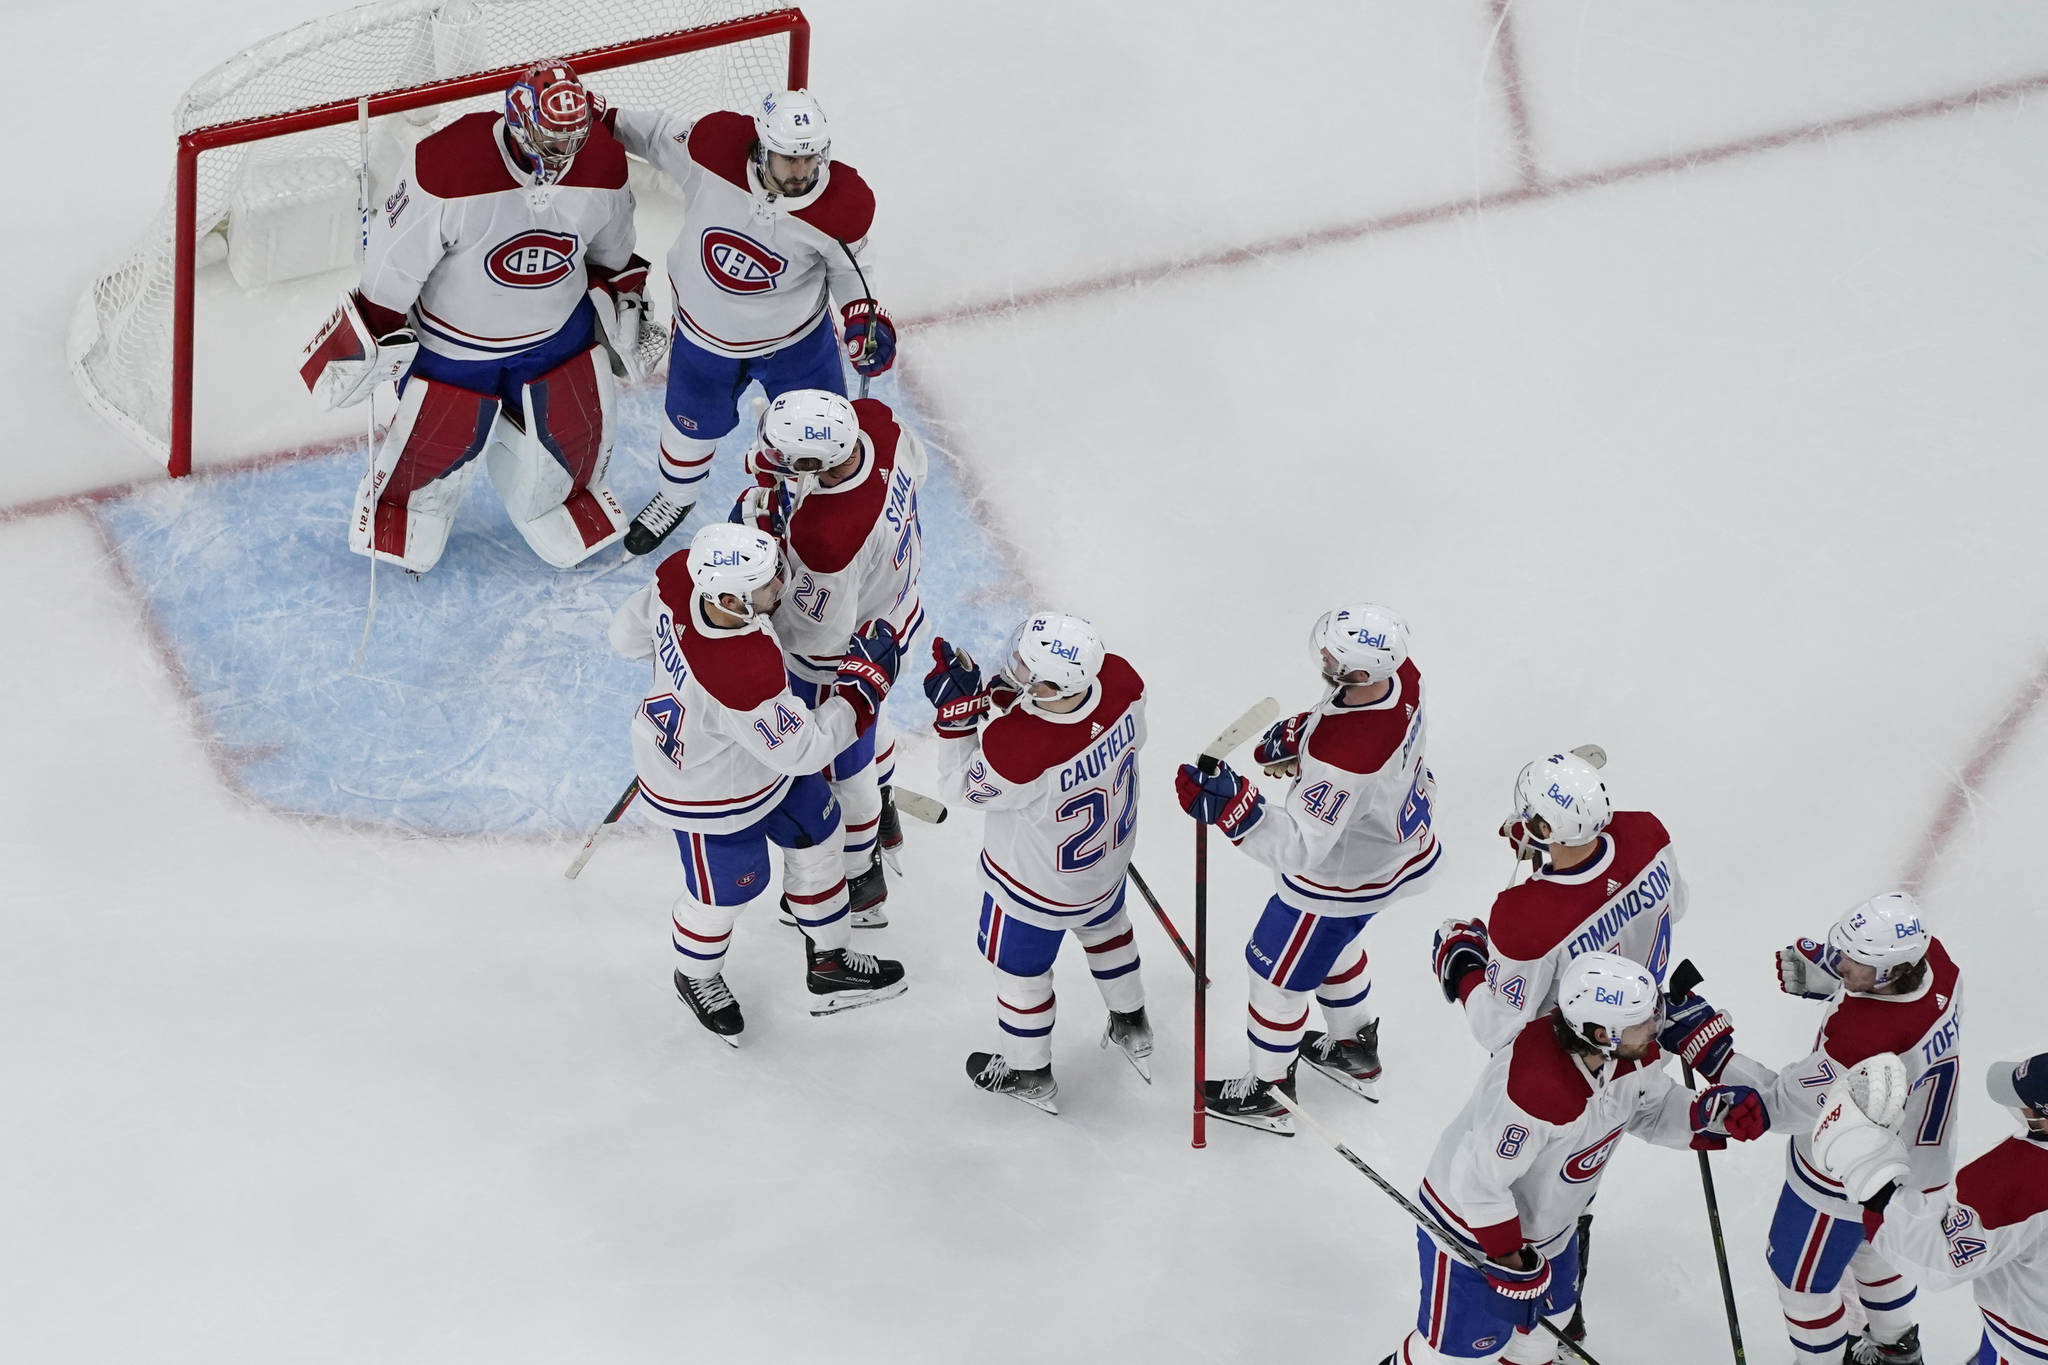 Montreal Canadiens celebrate after defeating the Vegas Golden Knights in Game 5 of an NHL hockey Stanley Cup semifinal playoff series Tuesday, June 22, 2021, in Las Vegas. (AP Photo/John Locher)